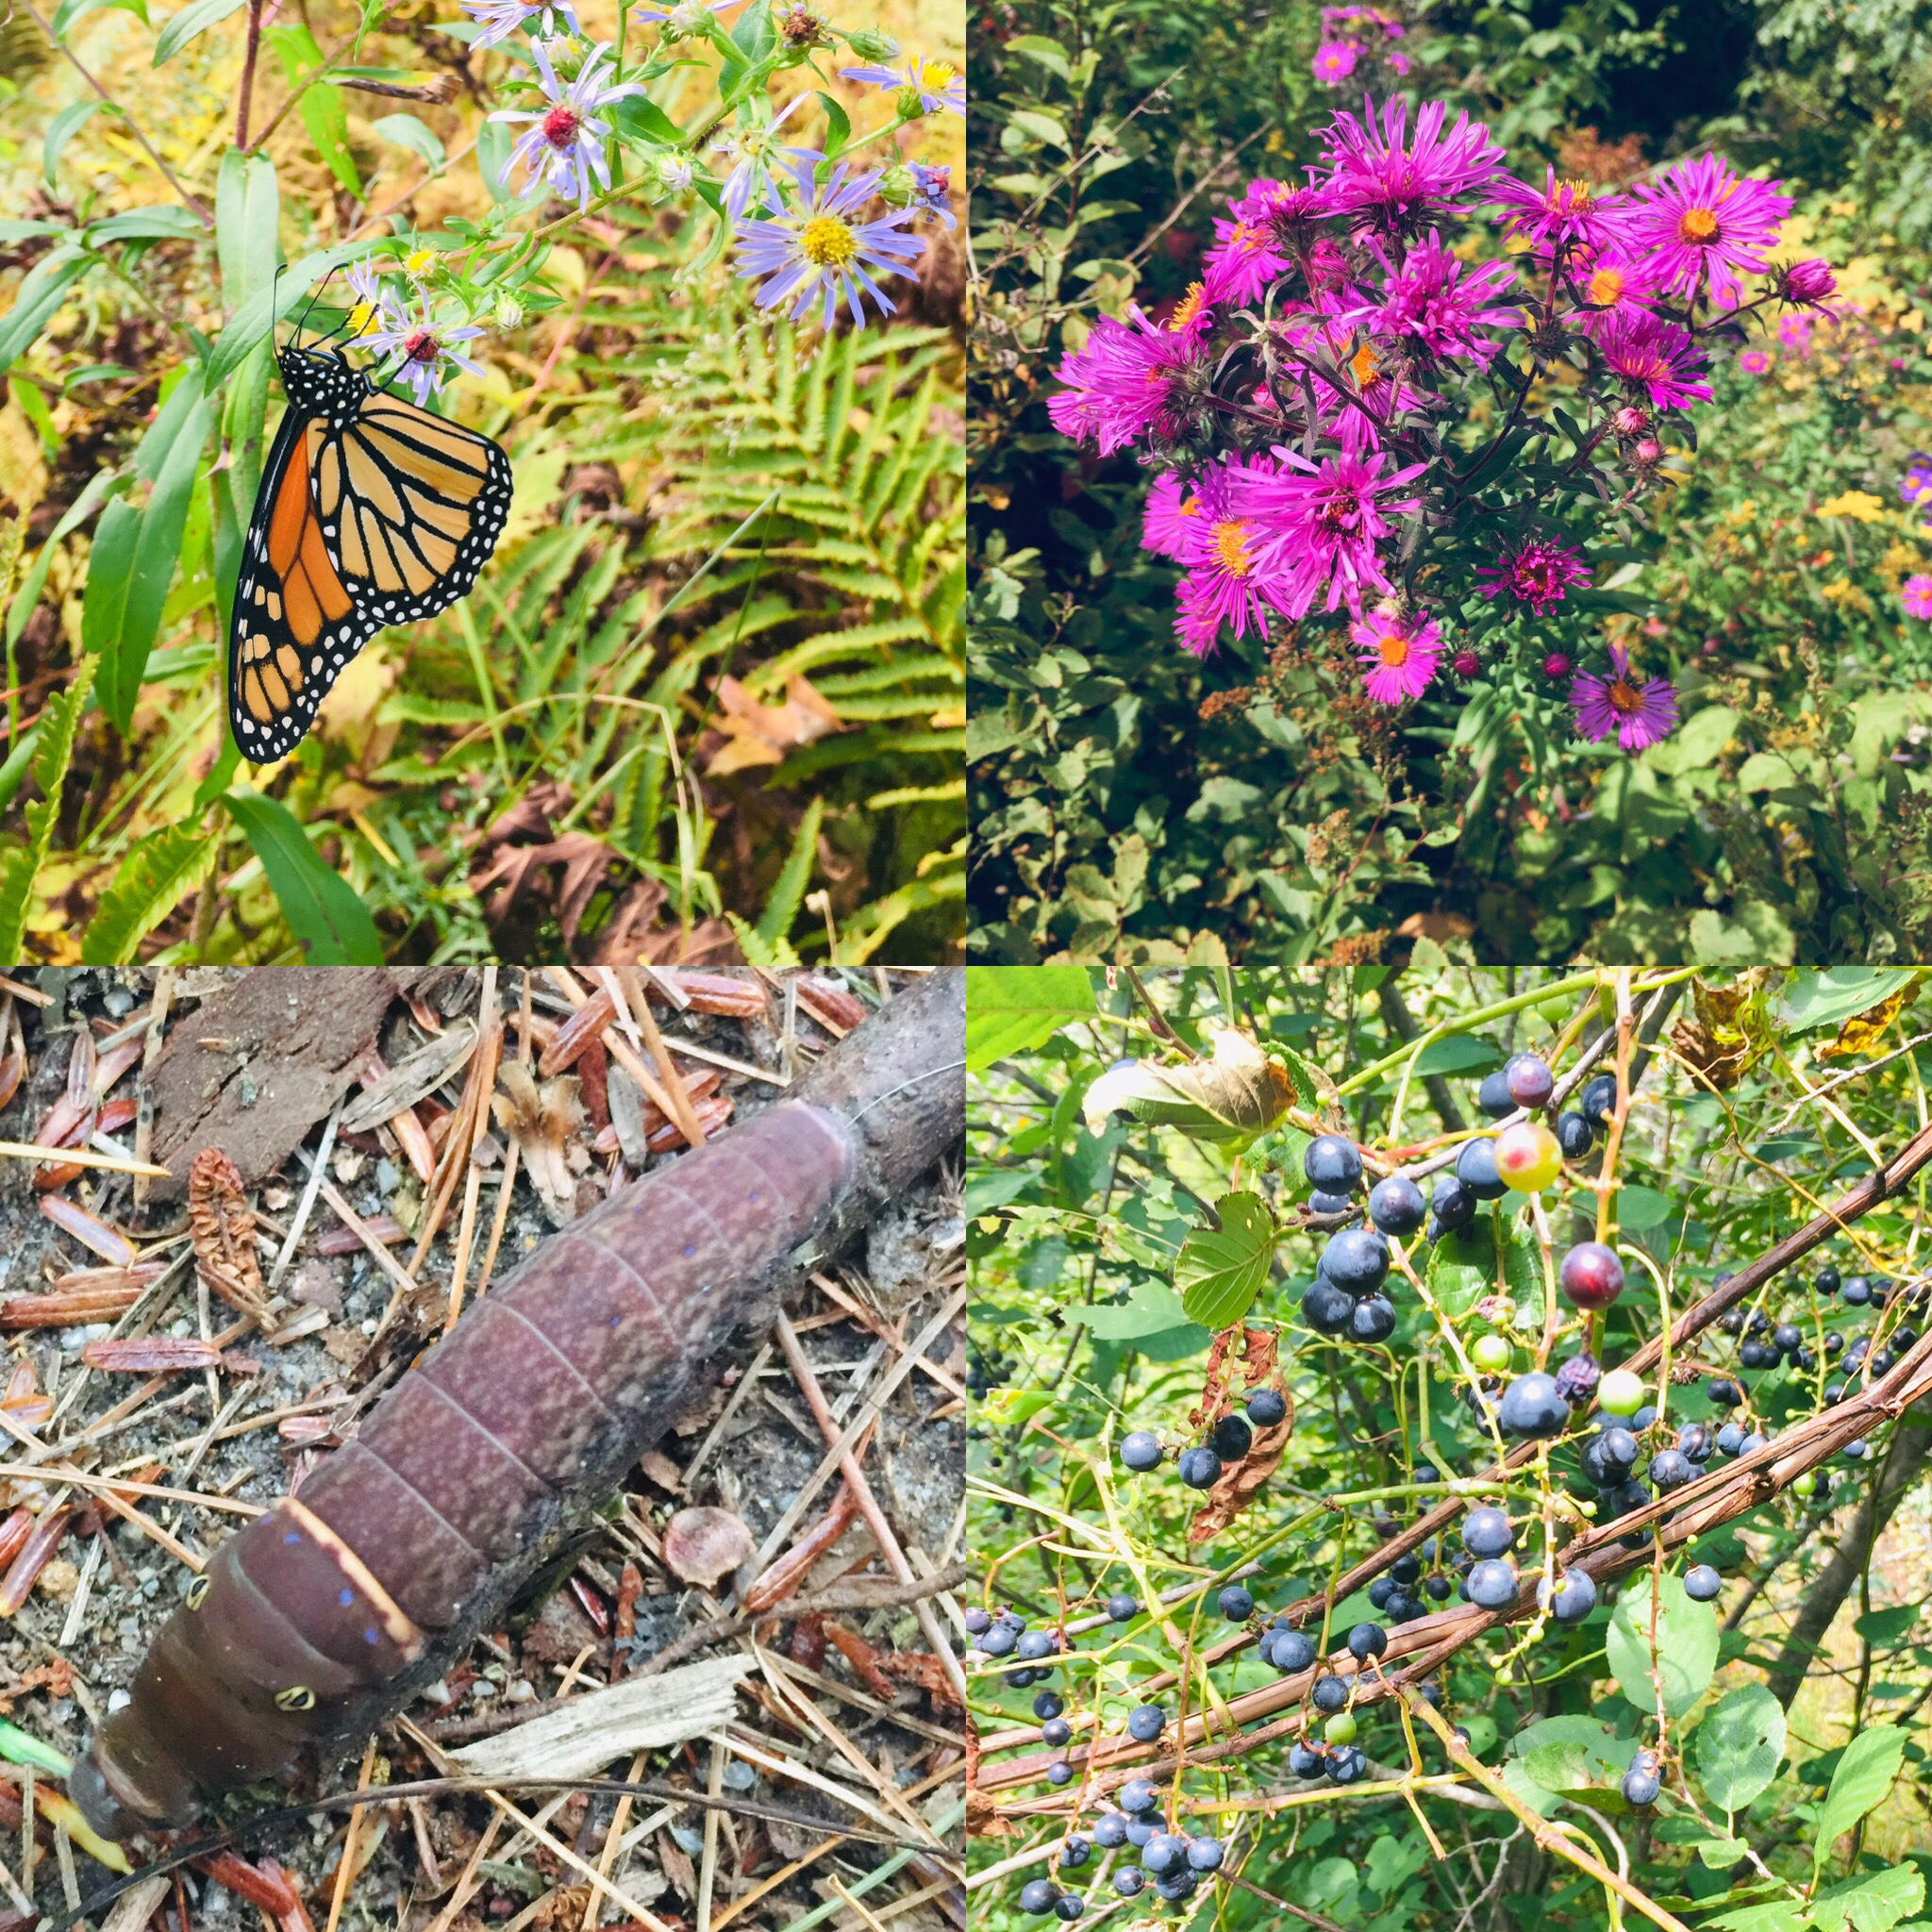 Flora and fauna, Mill Brook Preserve, Westbrook, ME